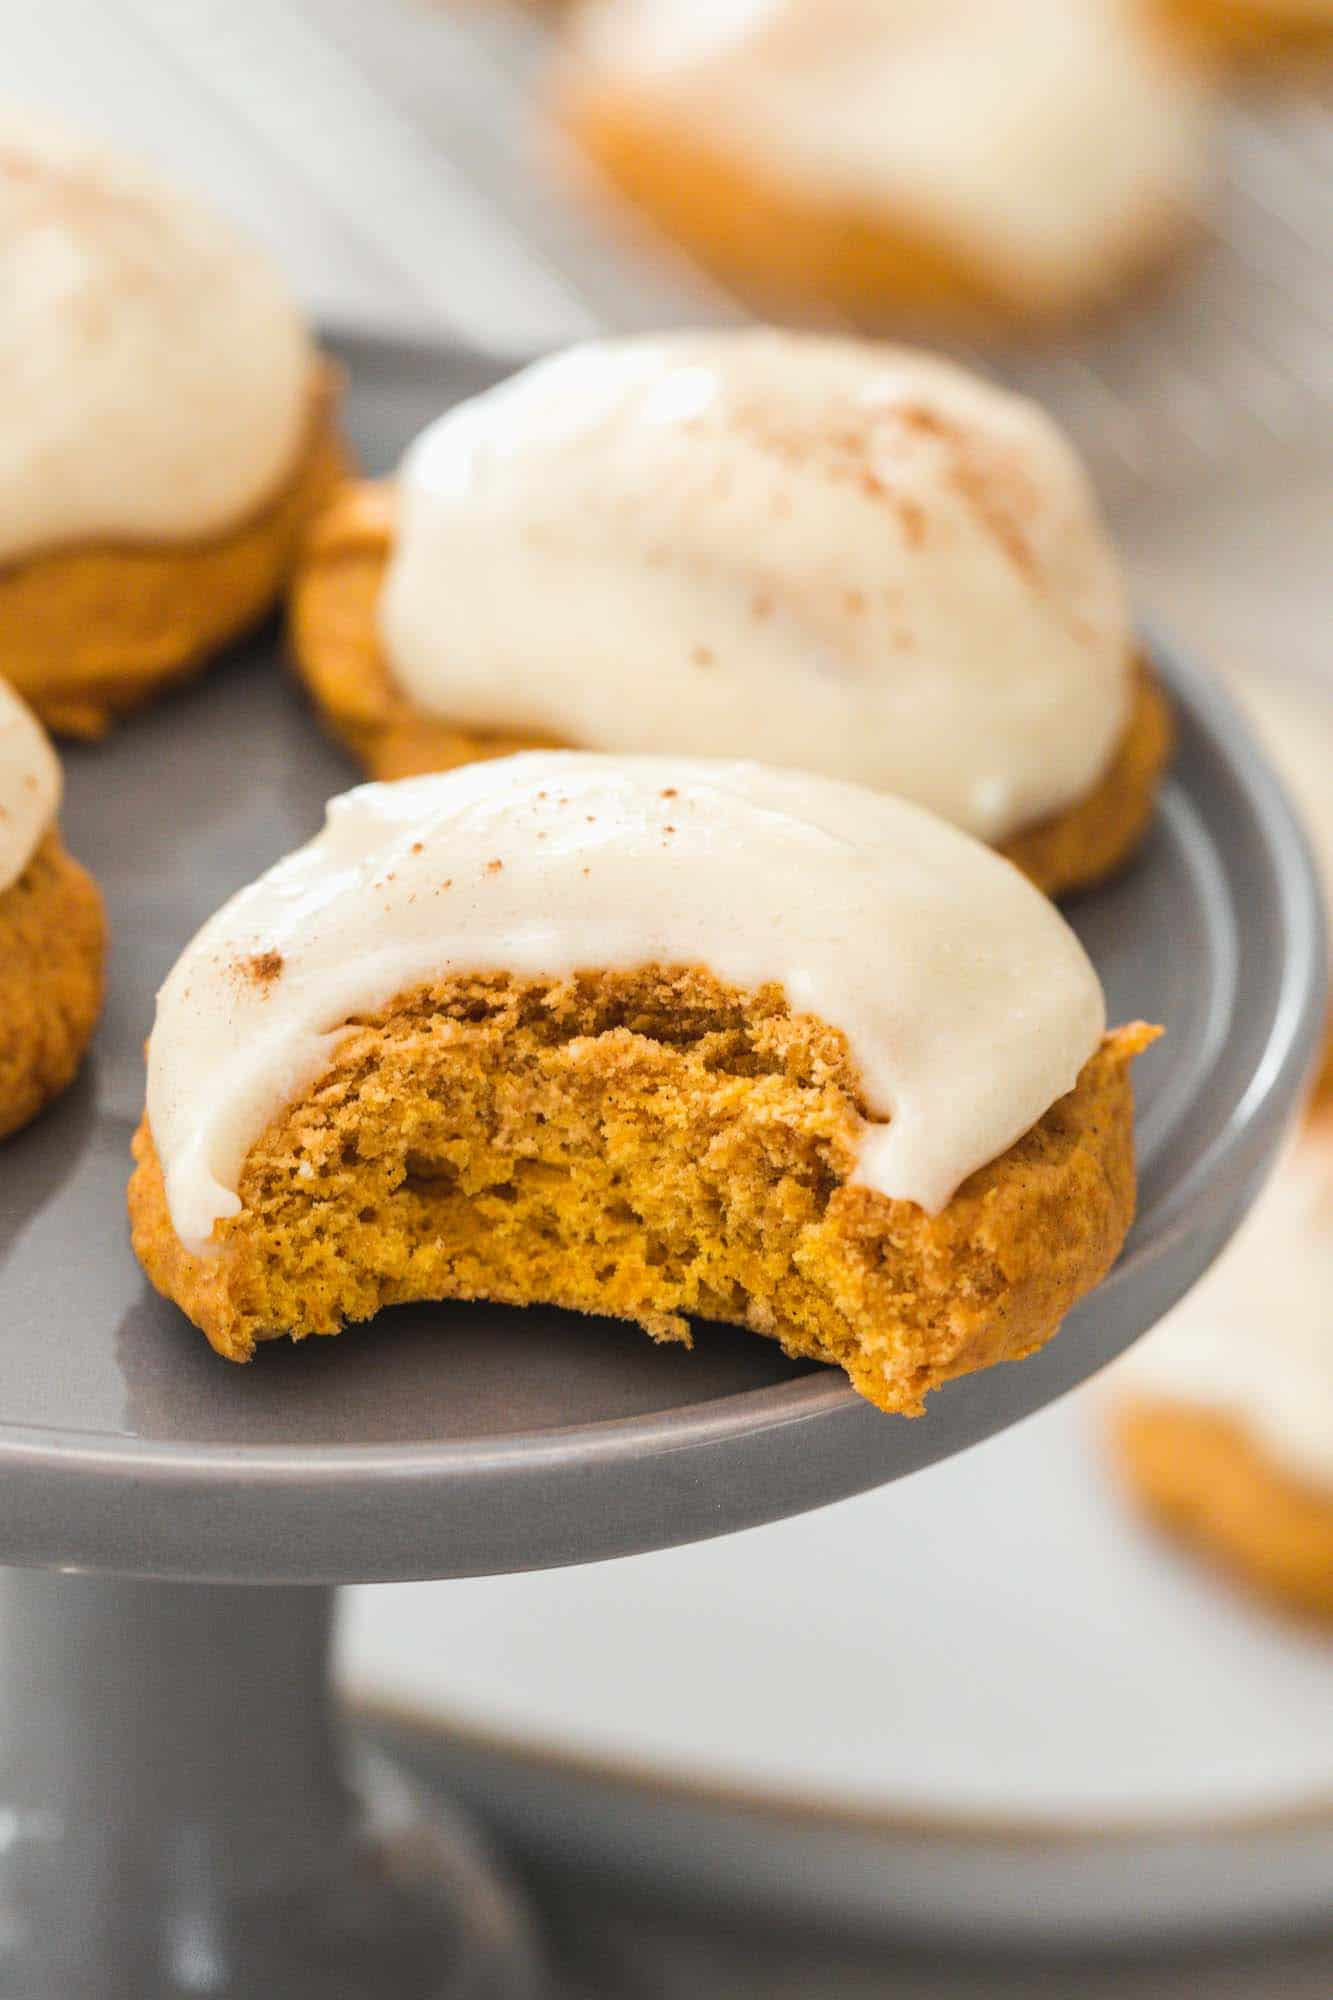 A bite shot of the pumpkin cookie frosted with cream cheese frosting